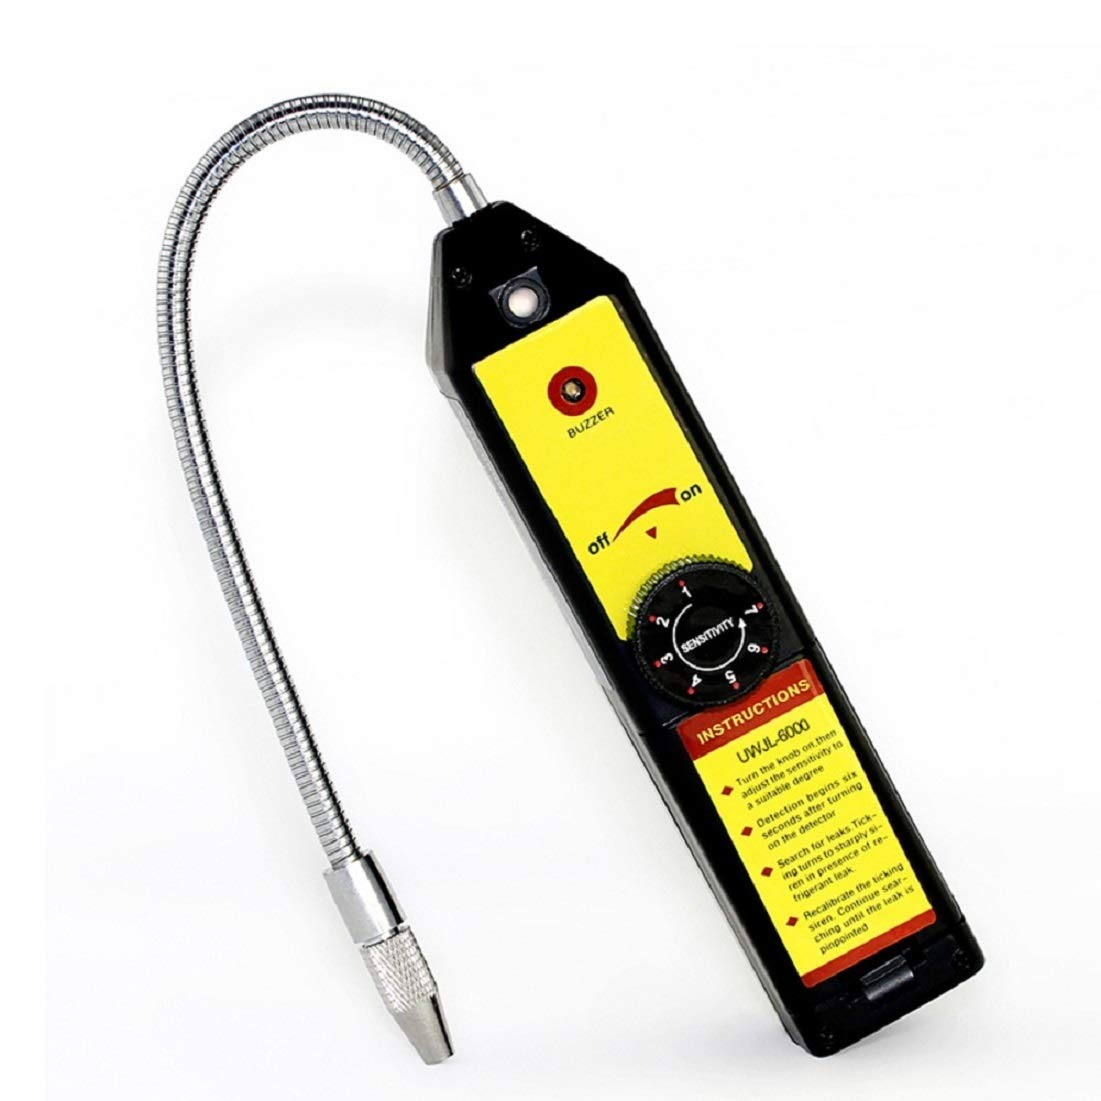 WJL-6000 Portable Refrigerant Halogen Leak Detector Tester Air Condition HVAC R22 R410A R134A CFCs HCFCs HFCs Detects